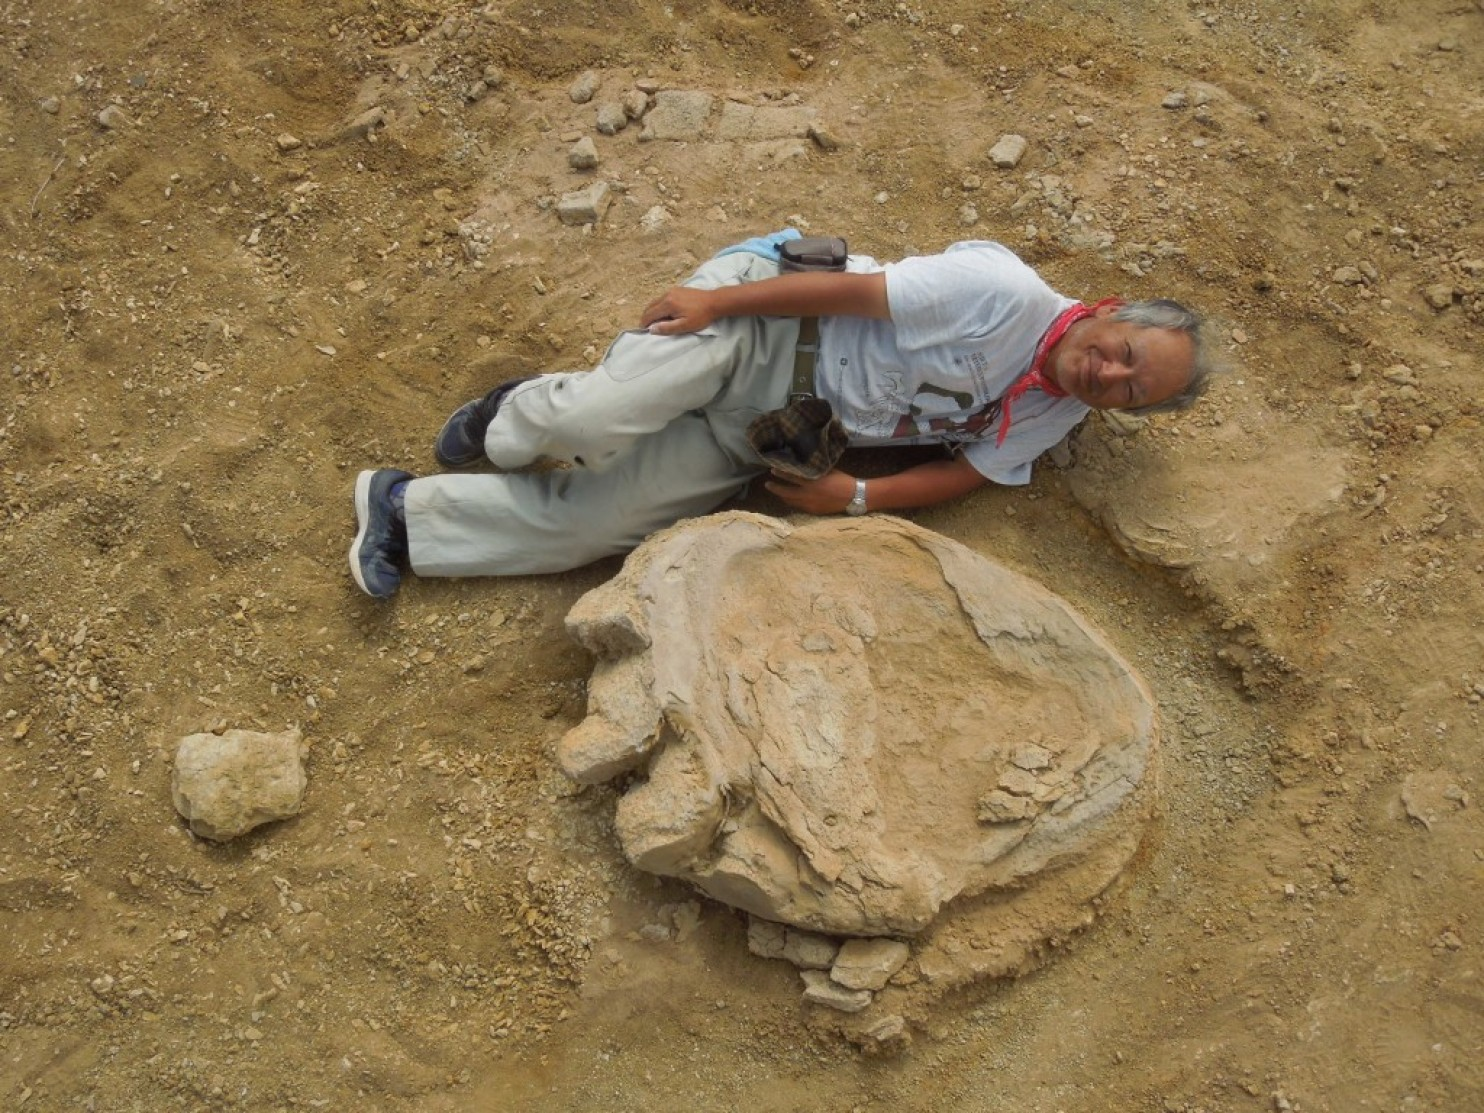 Professor Shinobu Ishigaki of the Okayama University of Science poses next to the large dinosaur footprint.